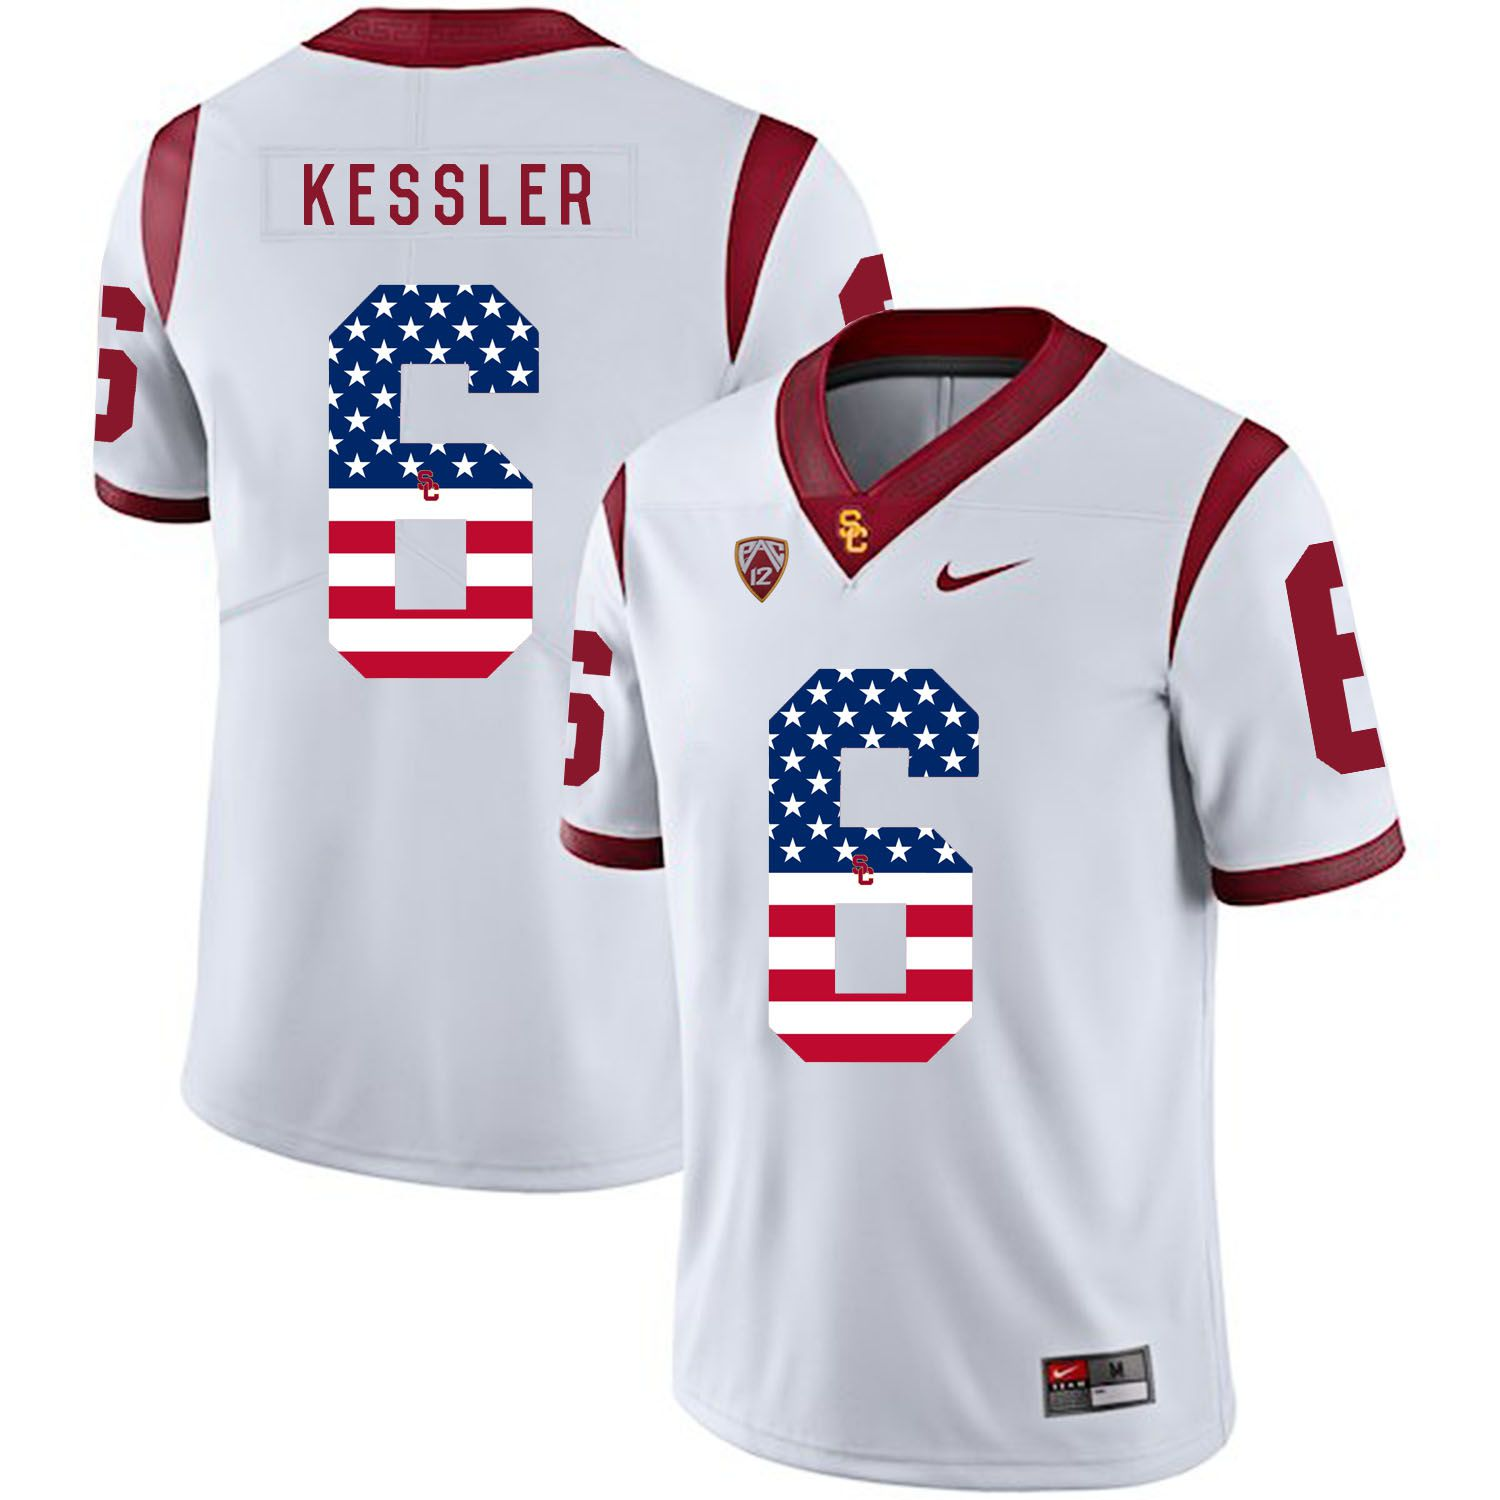 Men USC Trojans 6 Kessler White Flag Customized NCAA Jerseys